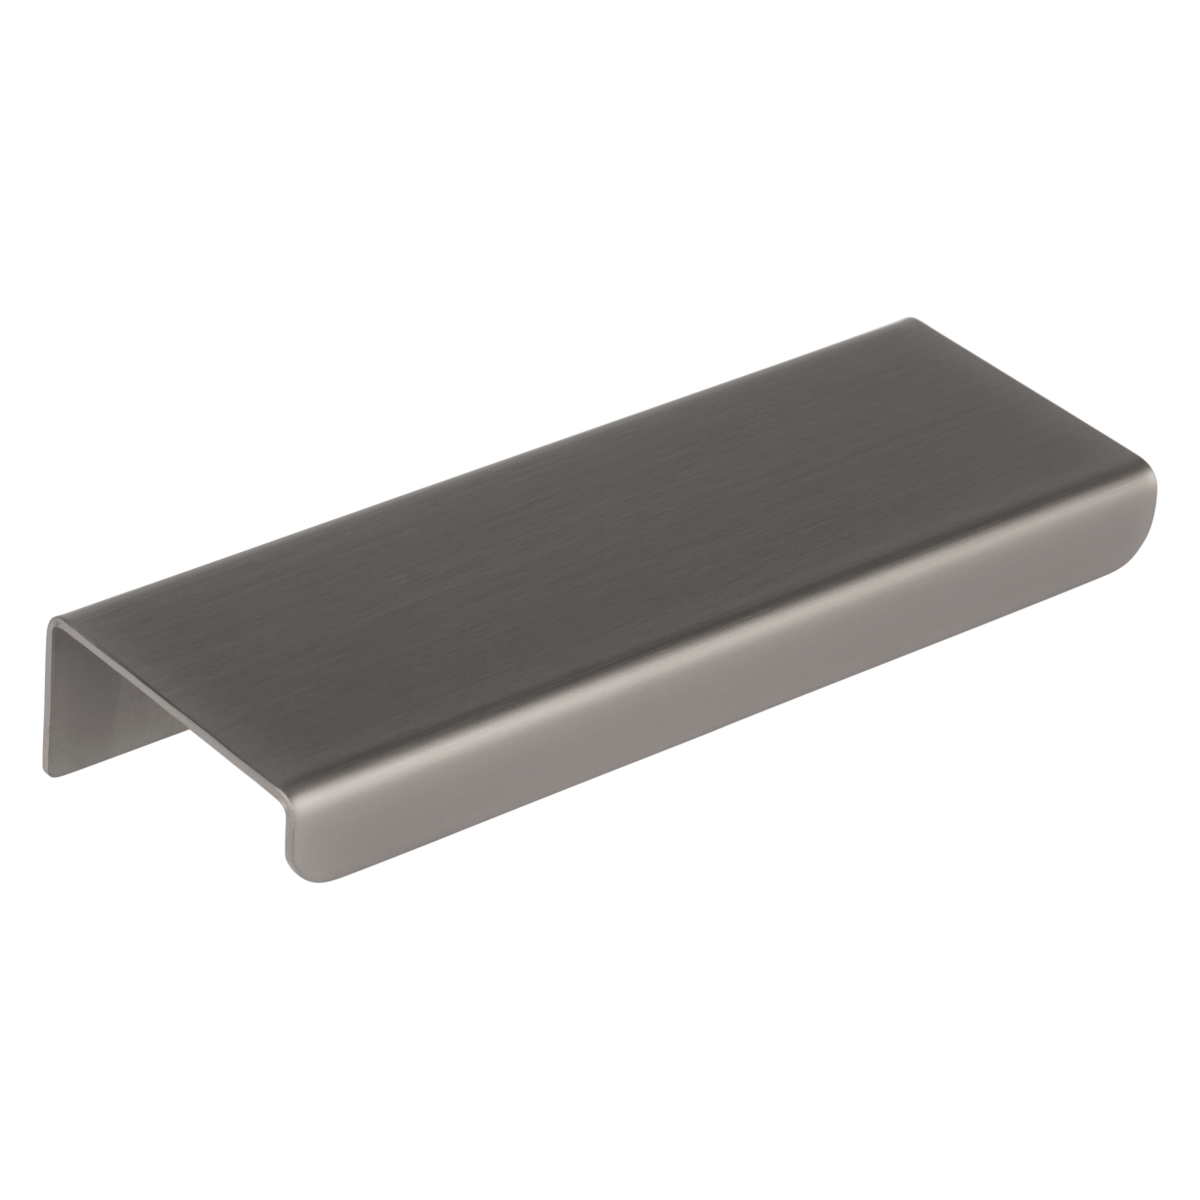 Rappana Cabinetry Pull Extended 100mm Brushed Gunmetal In 2020 Gunmetal Cabinetry Electronic Products